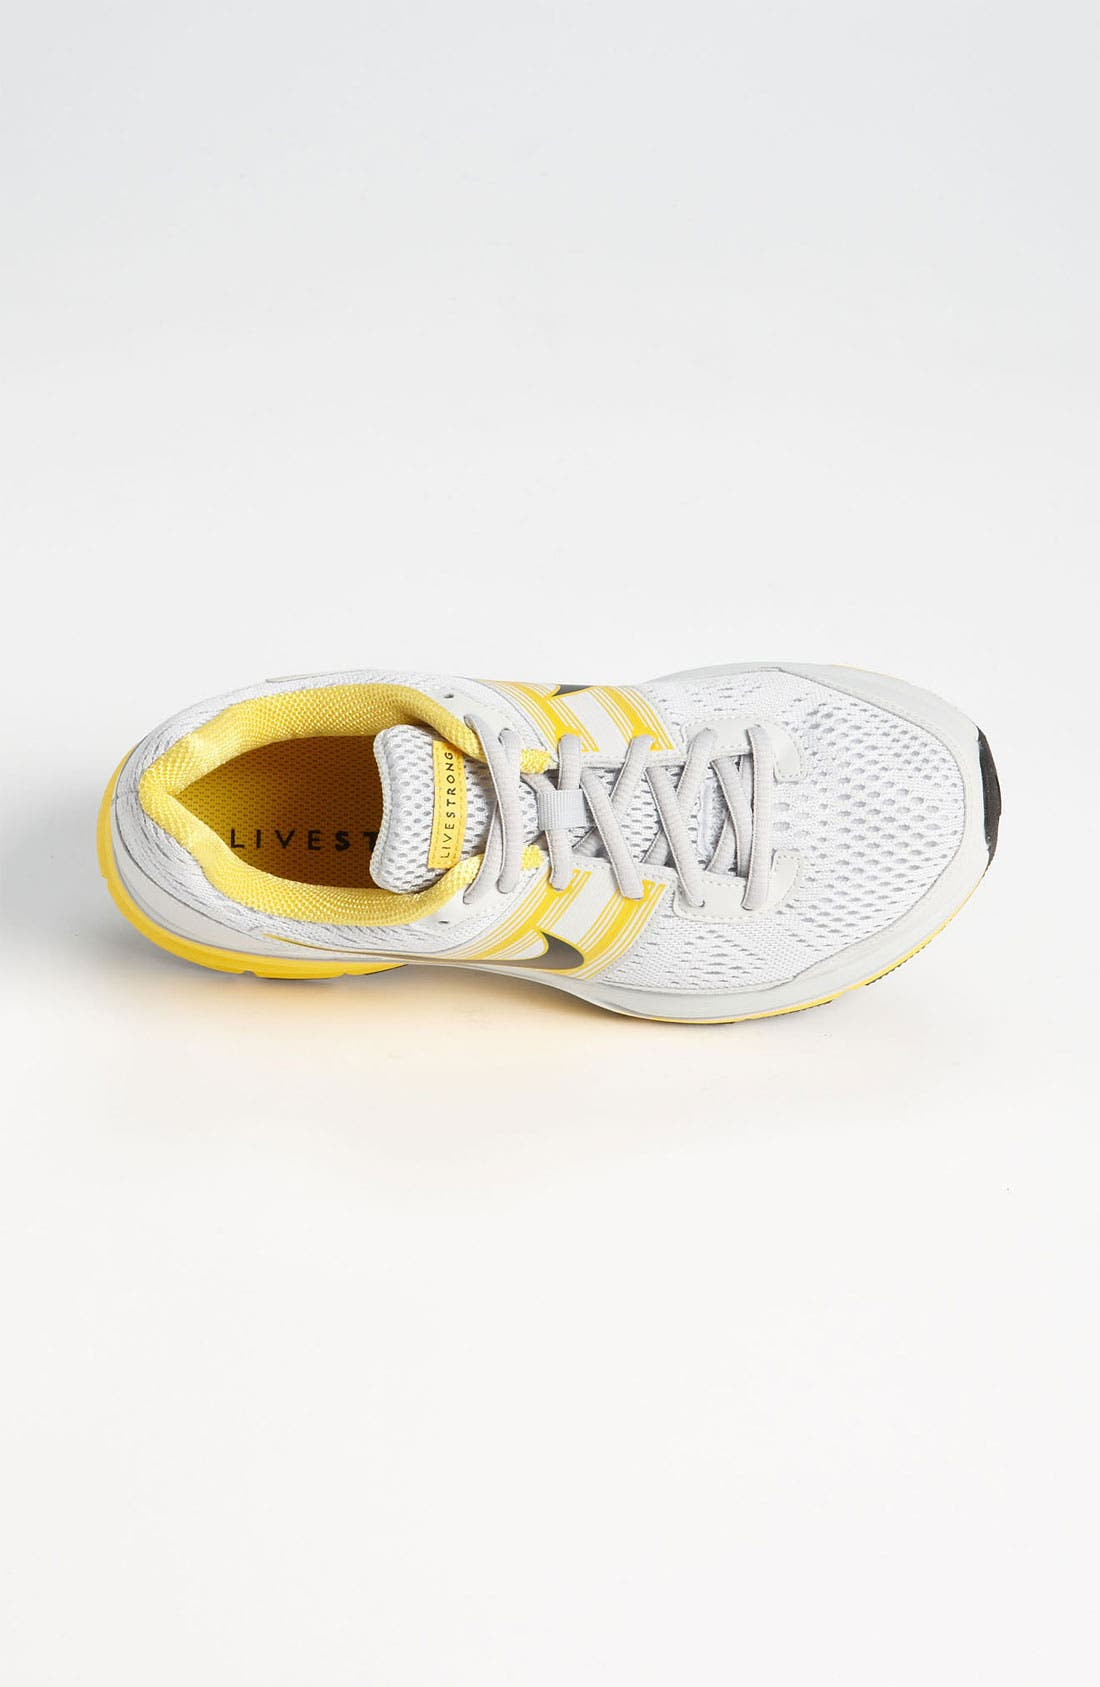 Alternate Image 3  - Nike 'Air Pegasus + 29 Livestrong' Running Shoe (Women)